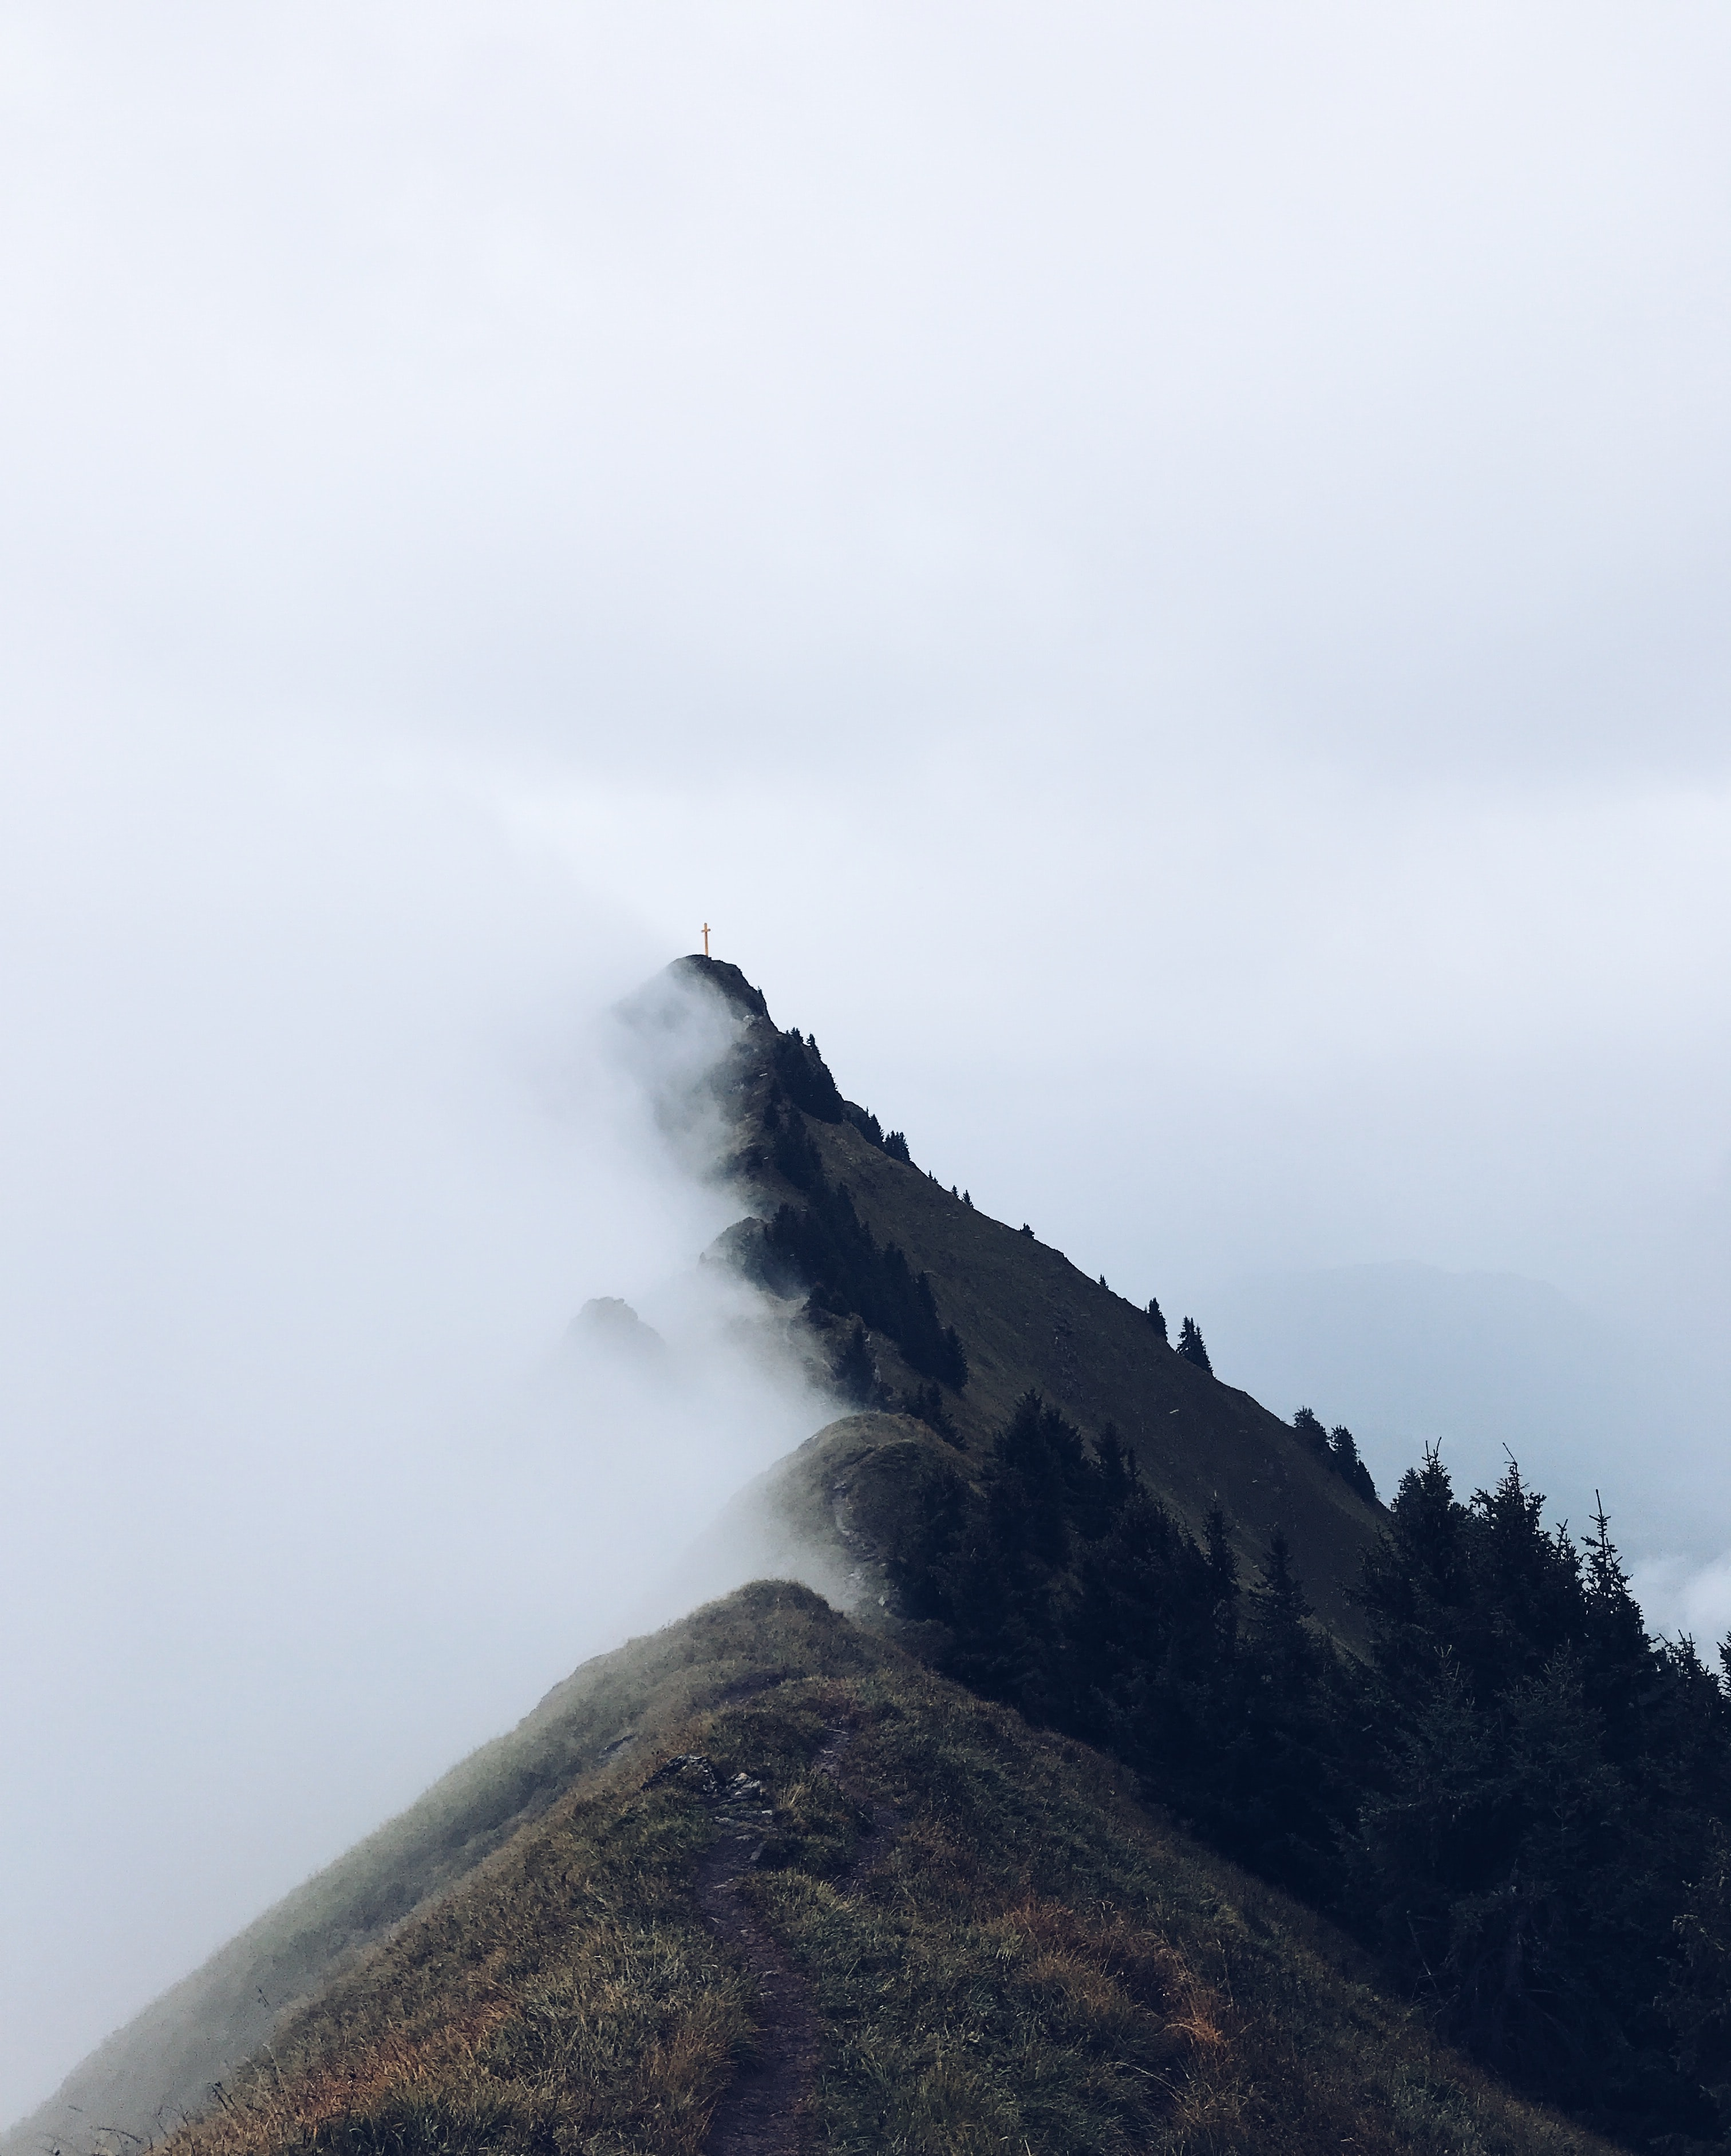 landscape photograph of mountain with fogs